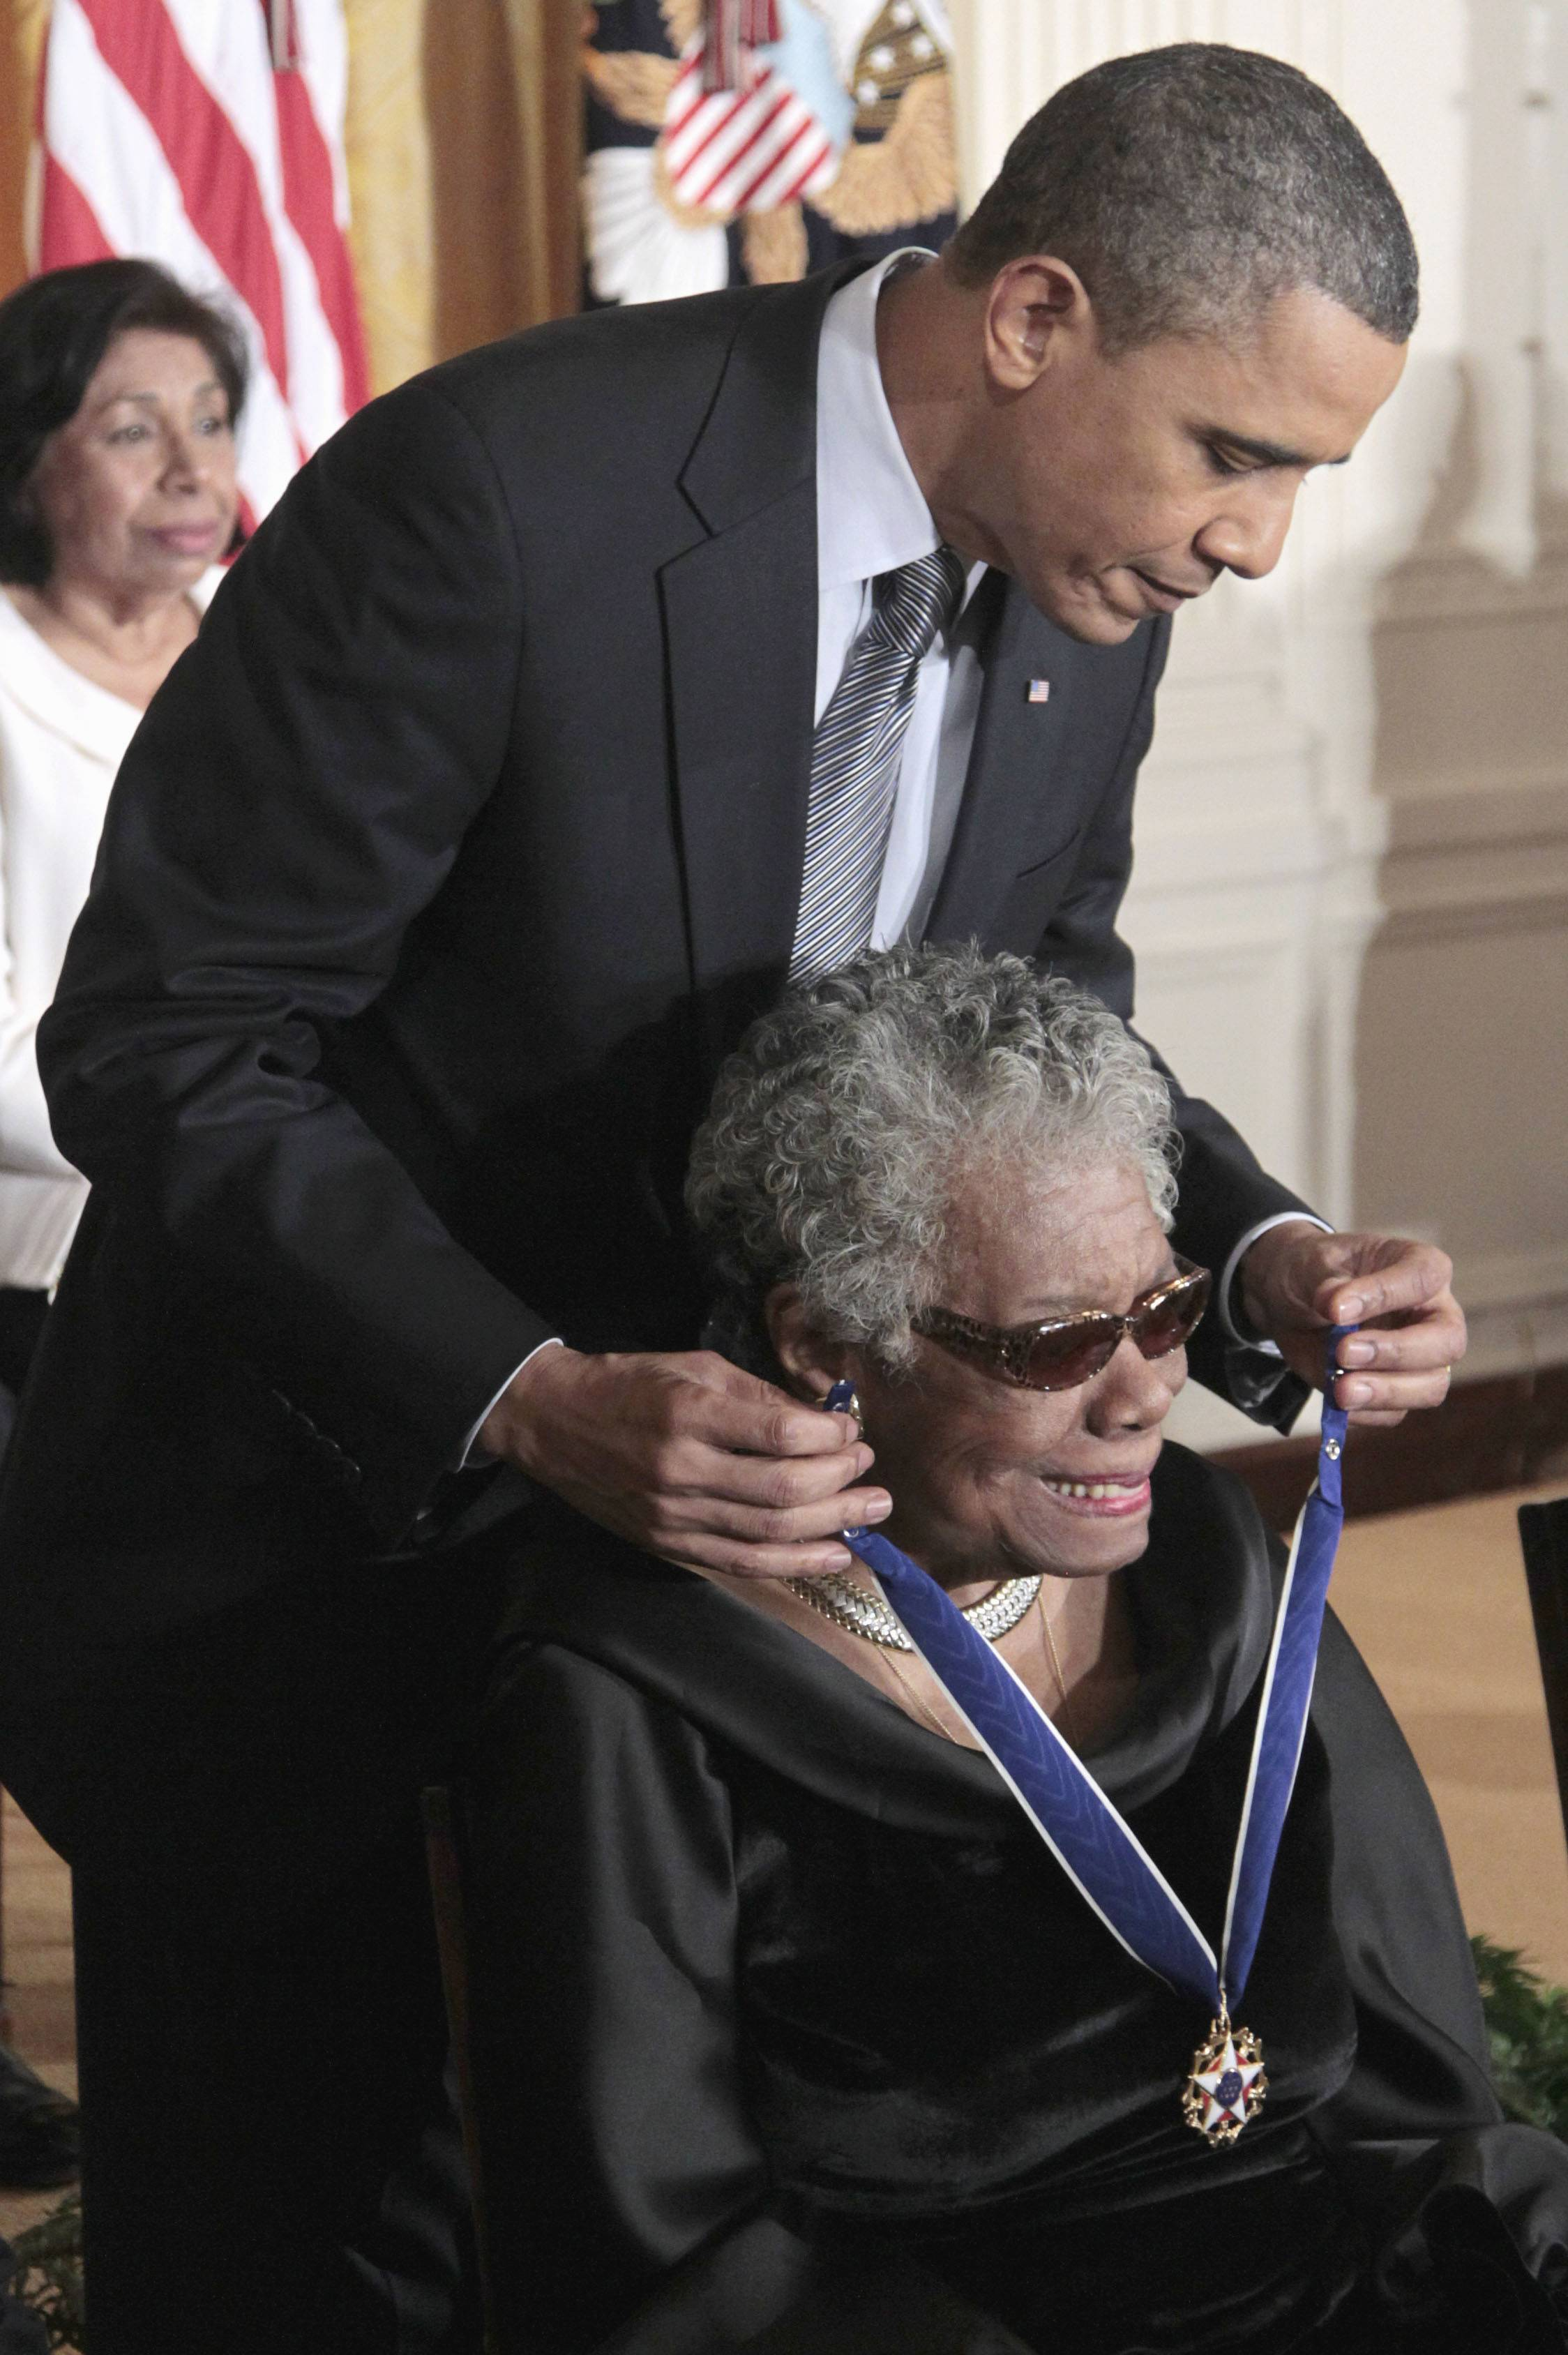 President Barack Obama presents a Presidential Medal of Freedom to author and poet Maya Angelou during a ceremony in the East Room of the White House in Washington, Tuesday, Feb. 15, 2011.